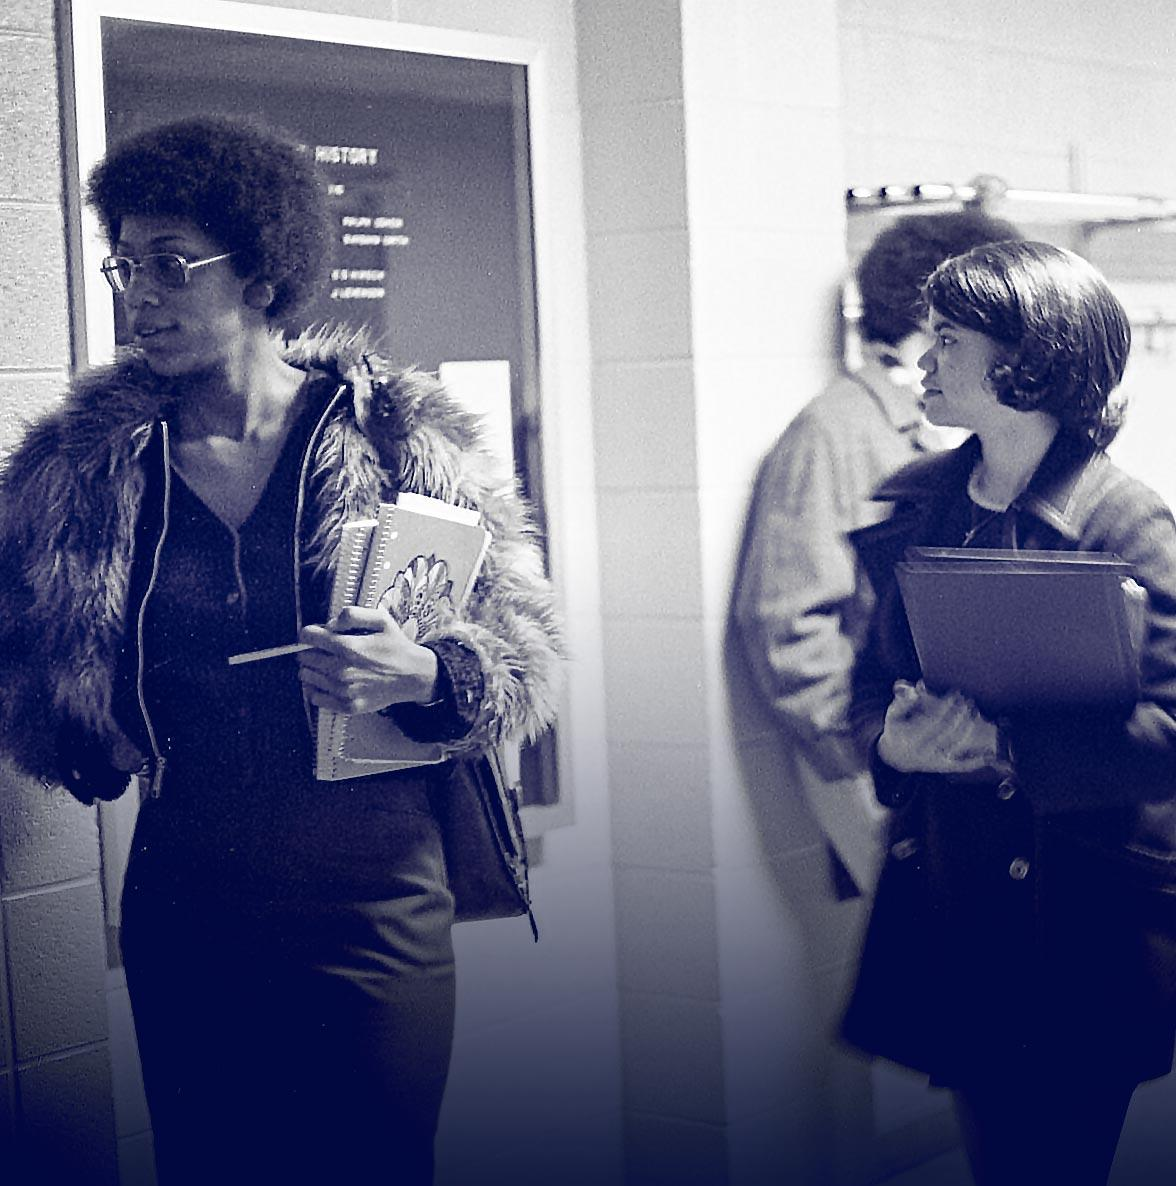 Two women waiting outside a classroom with books